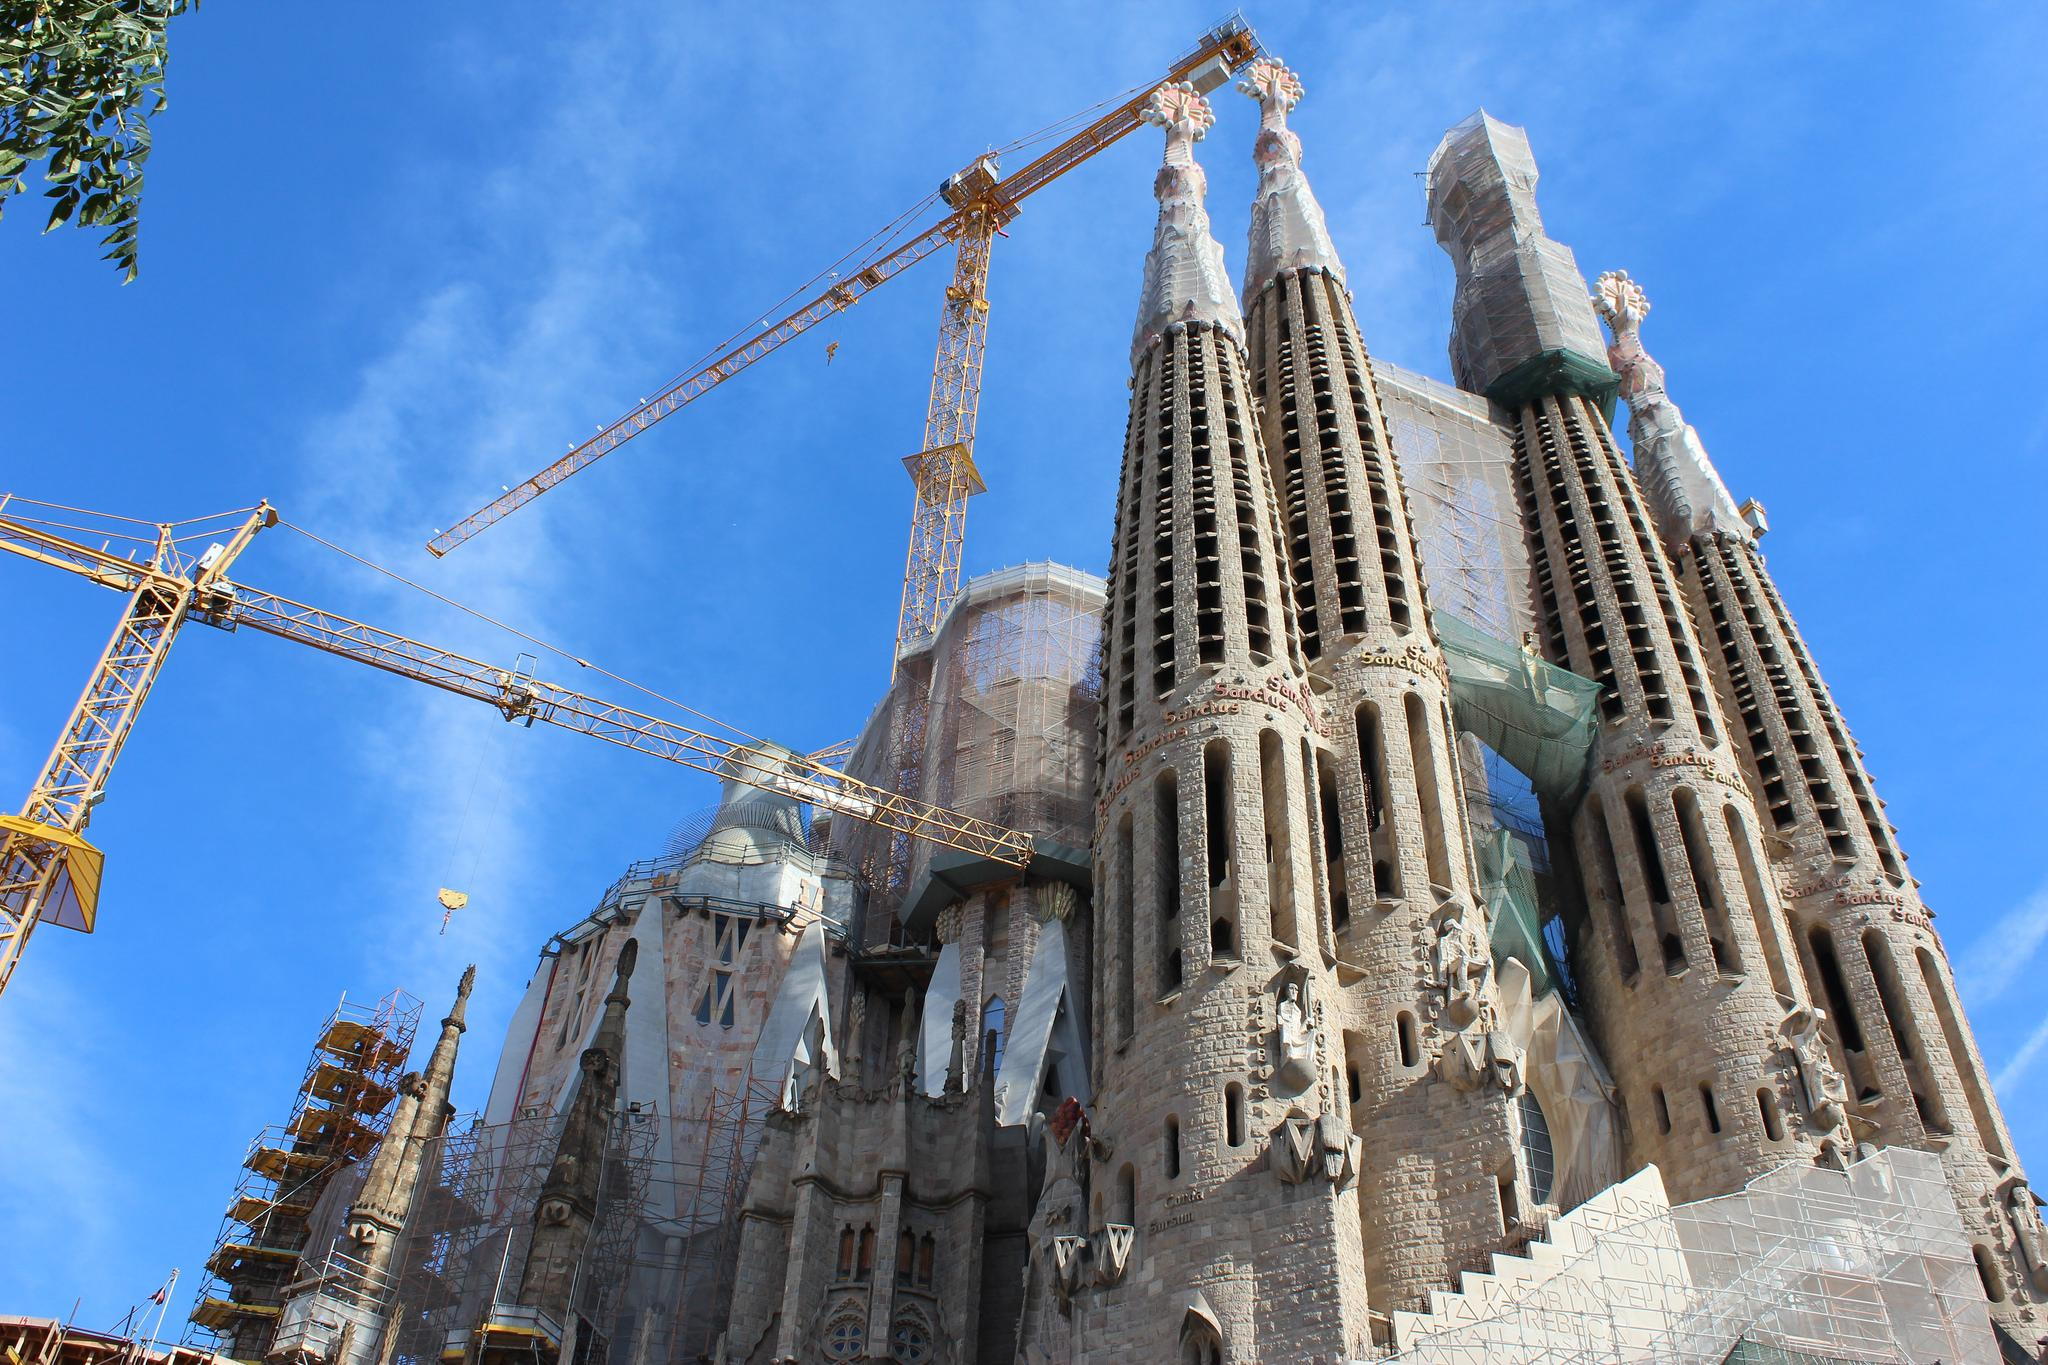 ravelers Find rt, rchitecture nd utonomy In Barcelona KNK - ^